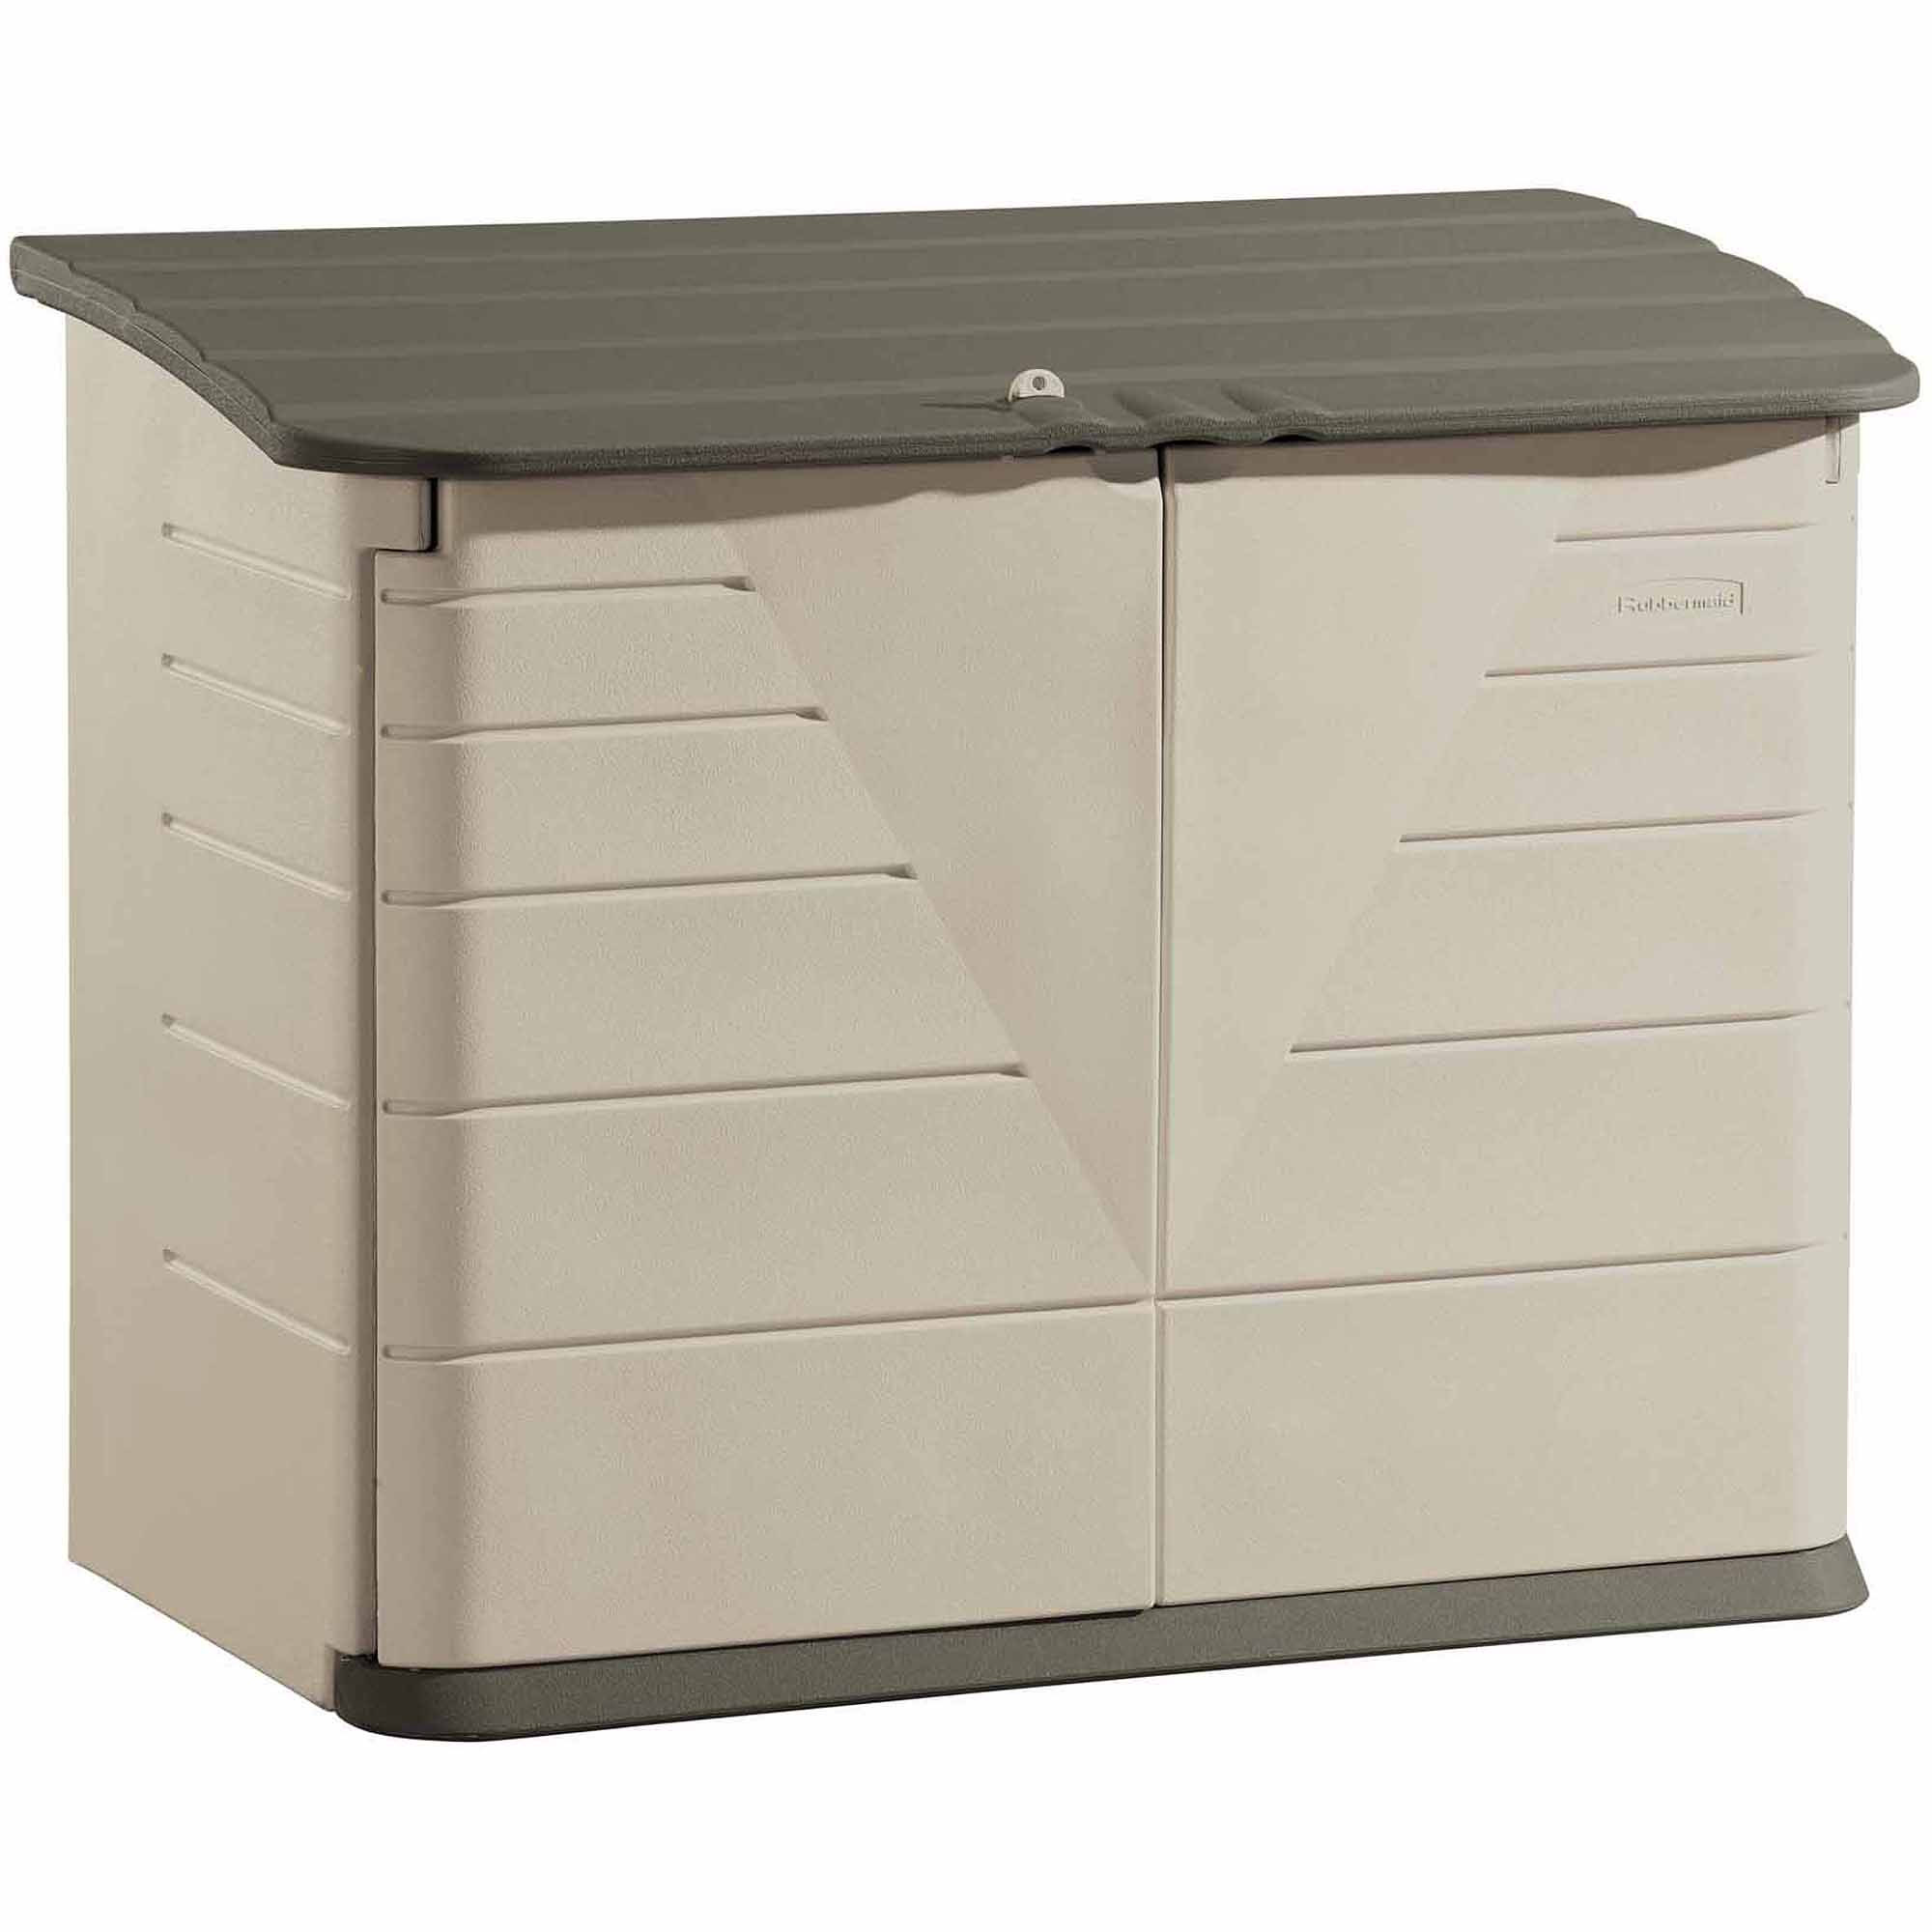 castle storage with gray feet rubbermaid under shed fiberon lid ideas sheds split deck cubic stairs